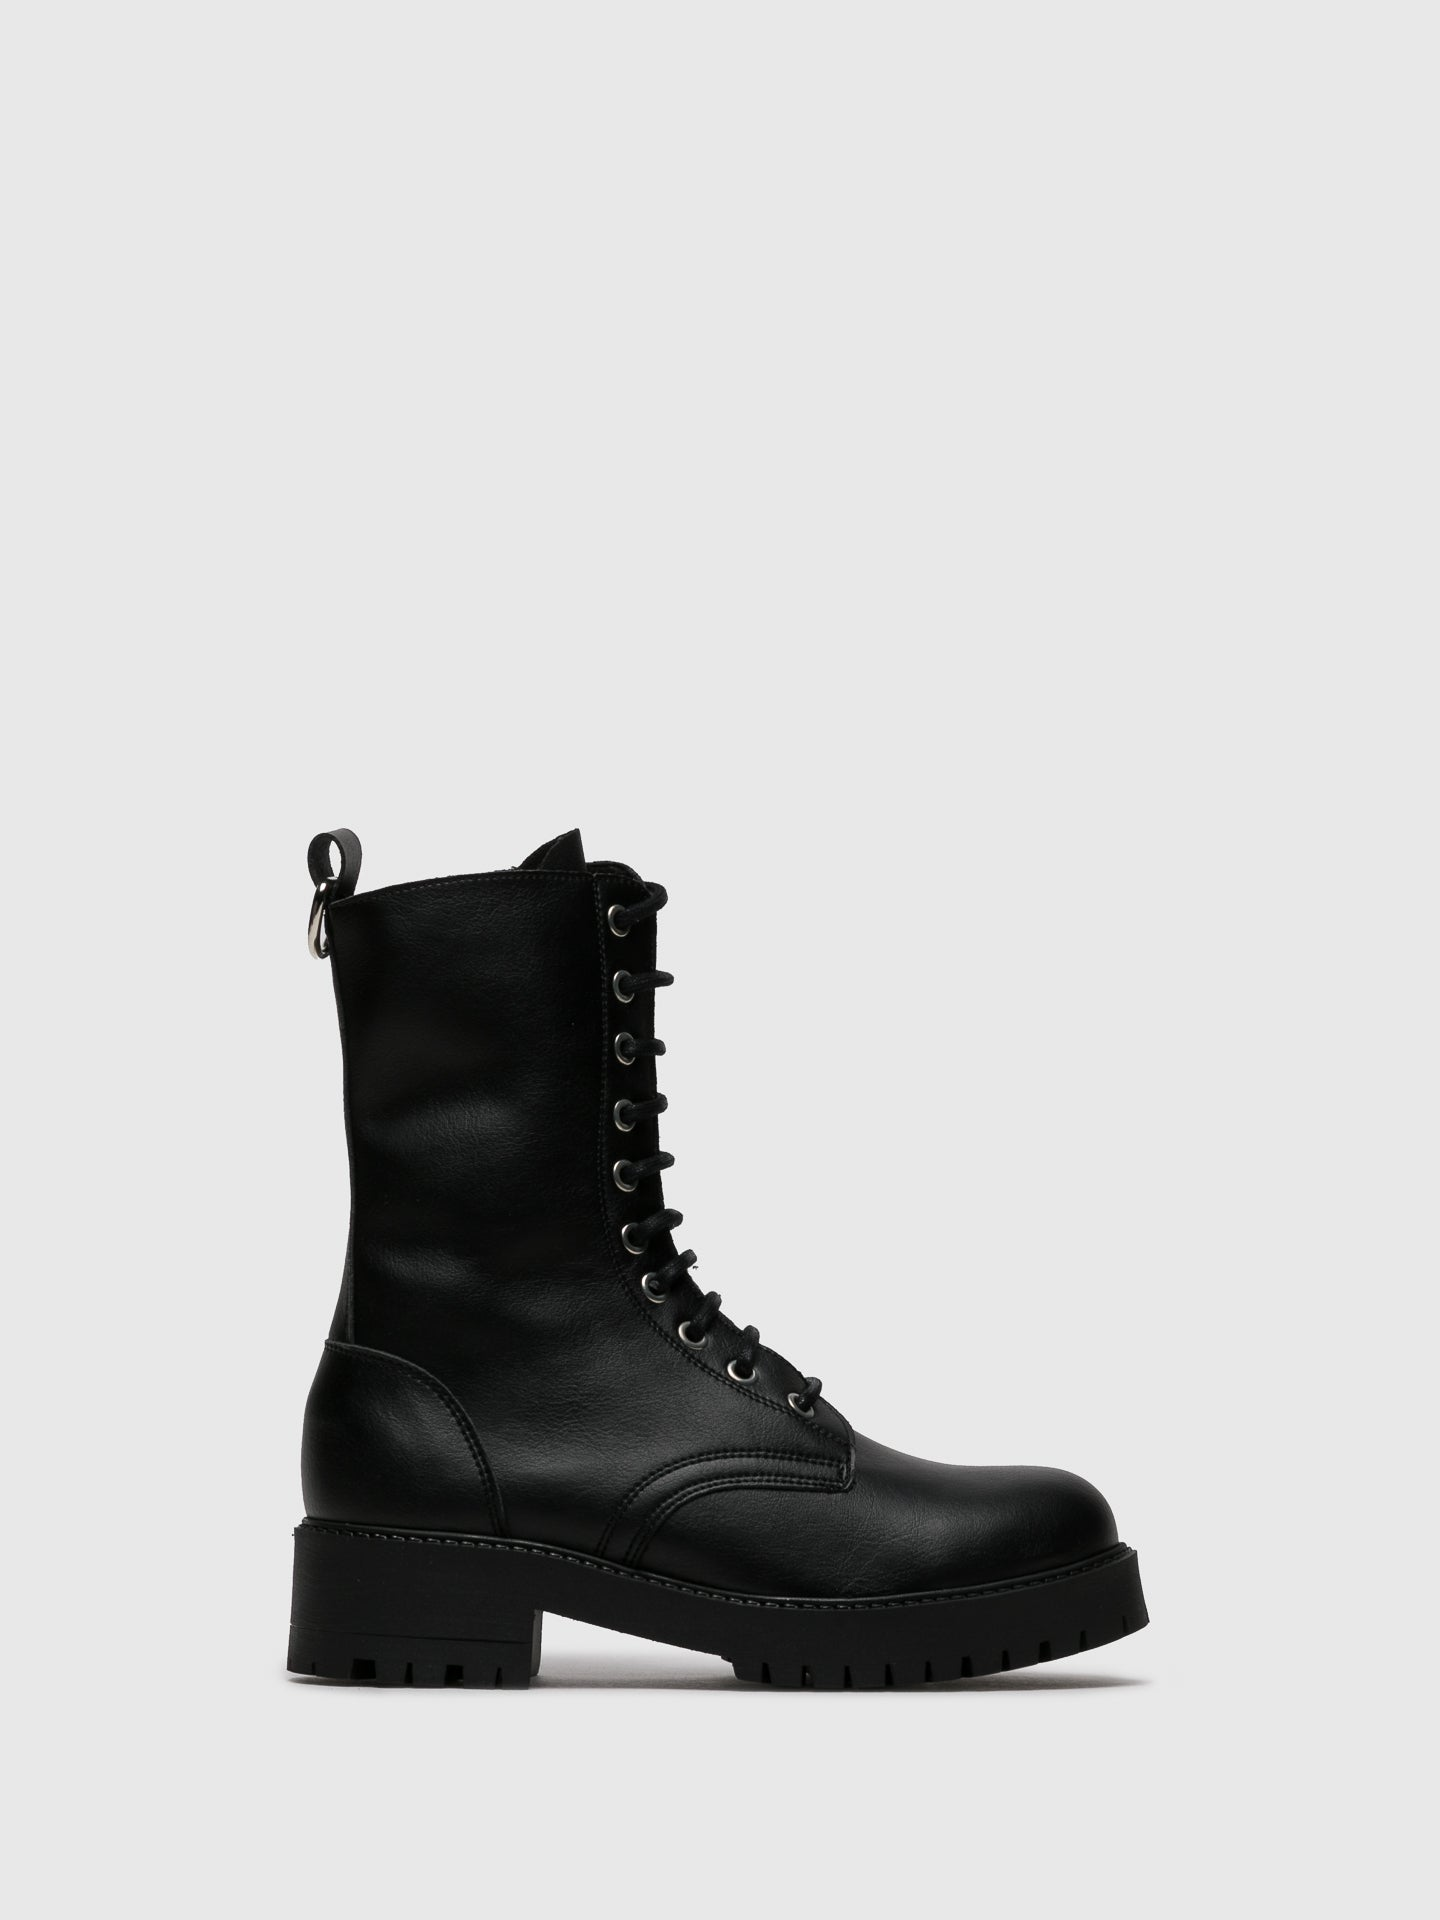 NAE Vegan Shoes Black Zip Up Boots